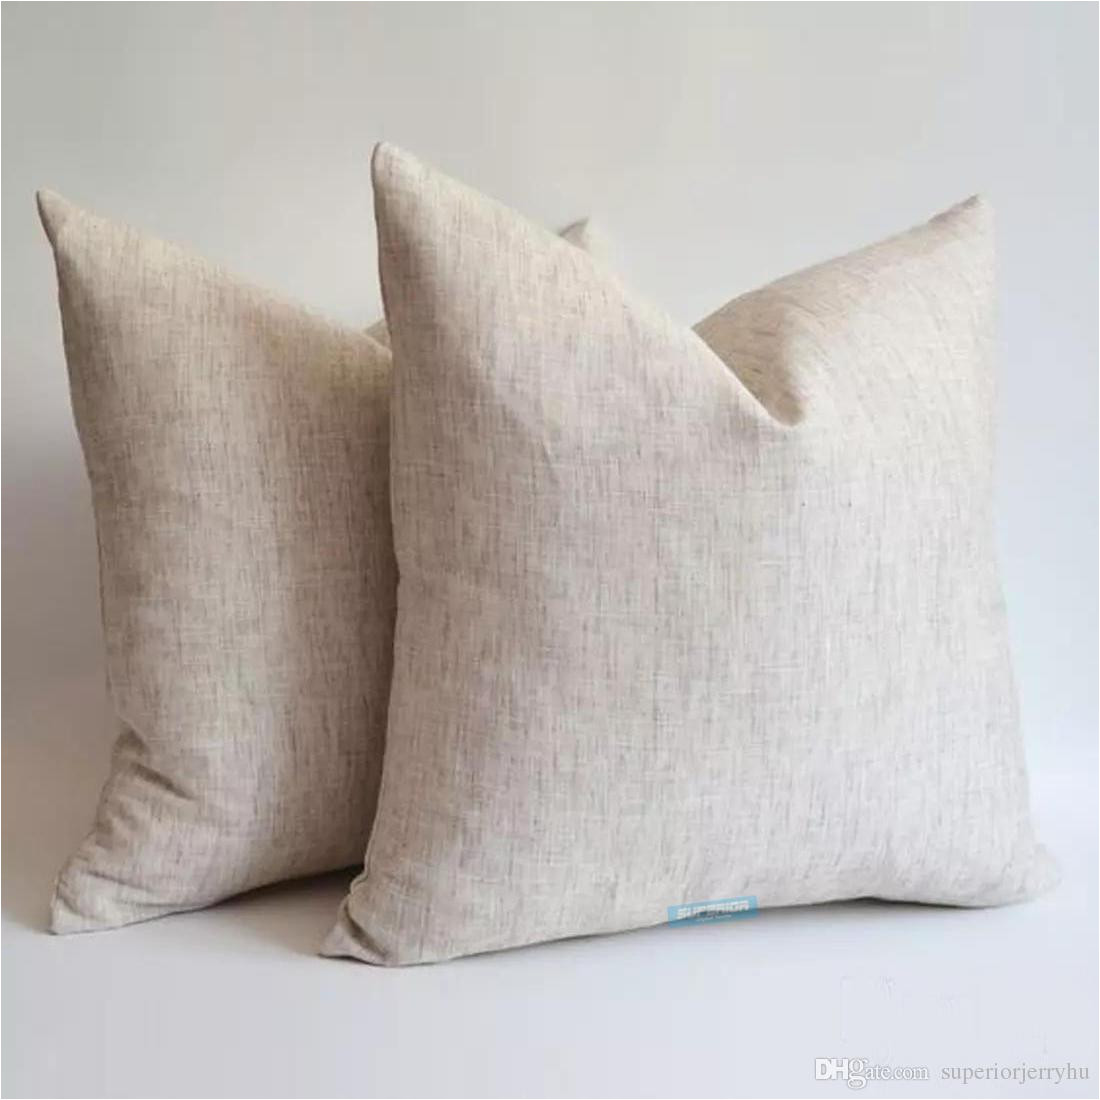 all sizes linen cotton blended natural gray pillow case gray blank linen pillow cover 240gsm natural fine linen cushion cover outdoor furniture pads patio